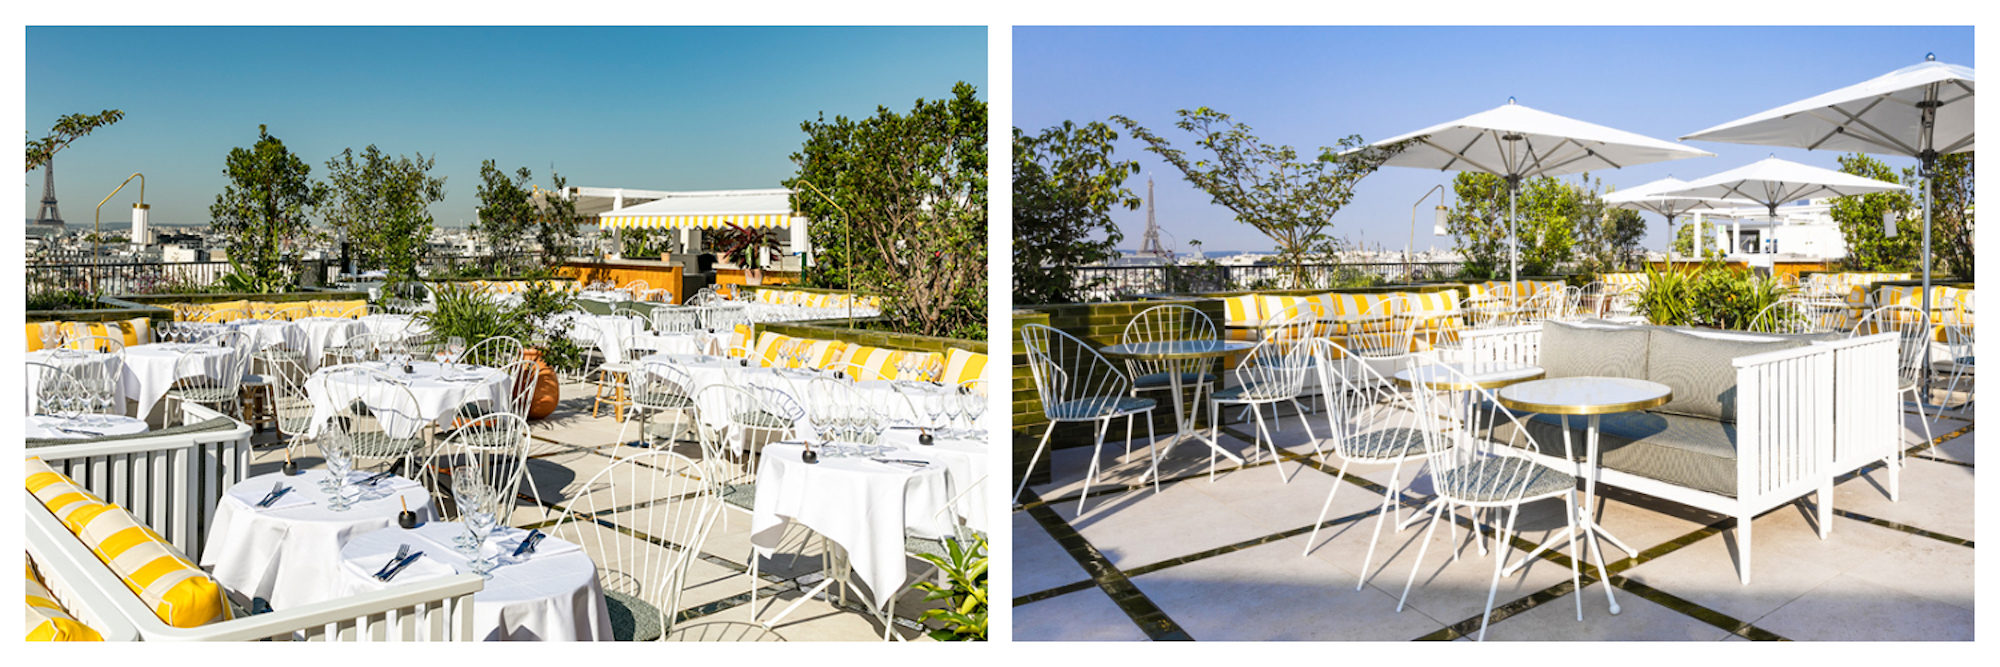 The chic Perruche rooftop bar in Paris with its beachy striped yellow and white banquettes, is set on top of the Printemps department store.